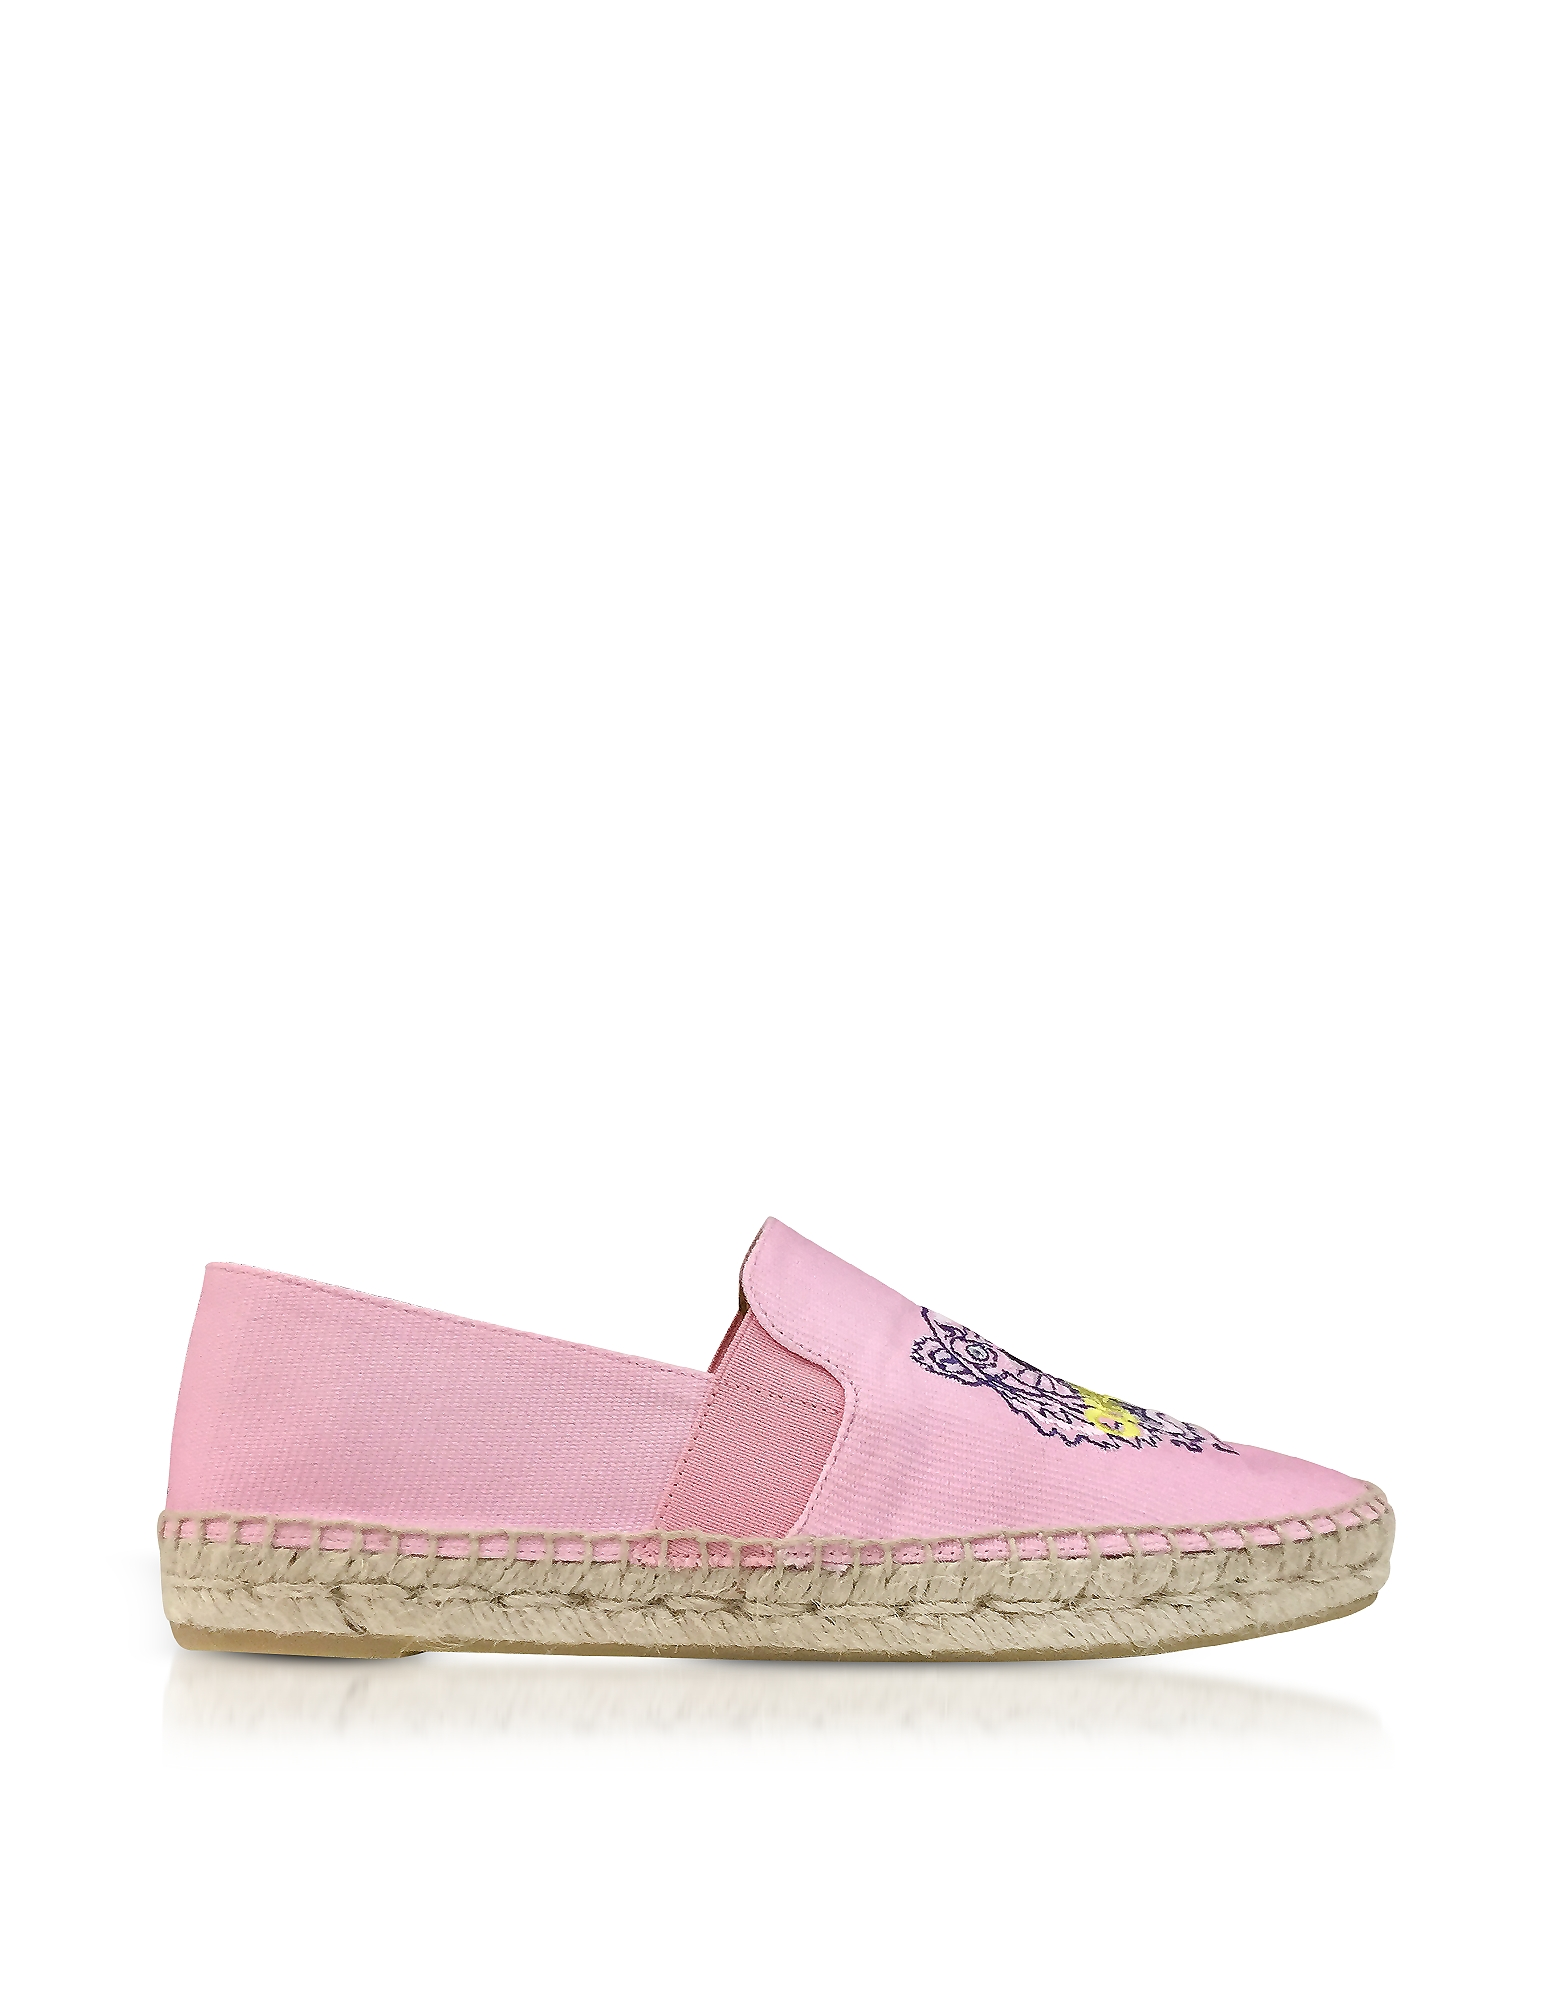 Kenzo Shoes, Flamingo Pink Canvas Women's Tiger Espadrilles